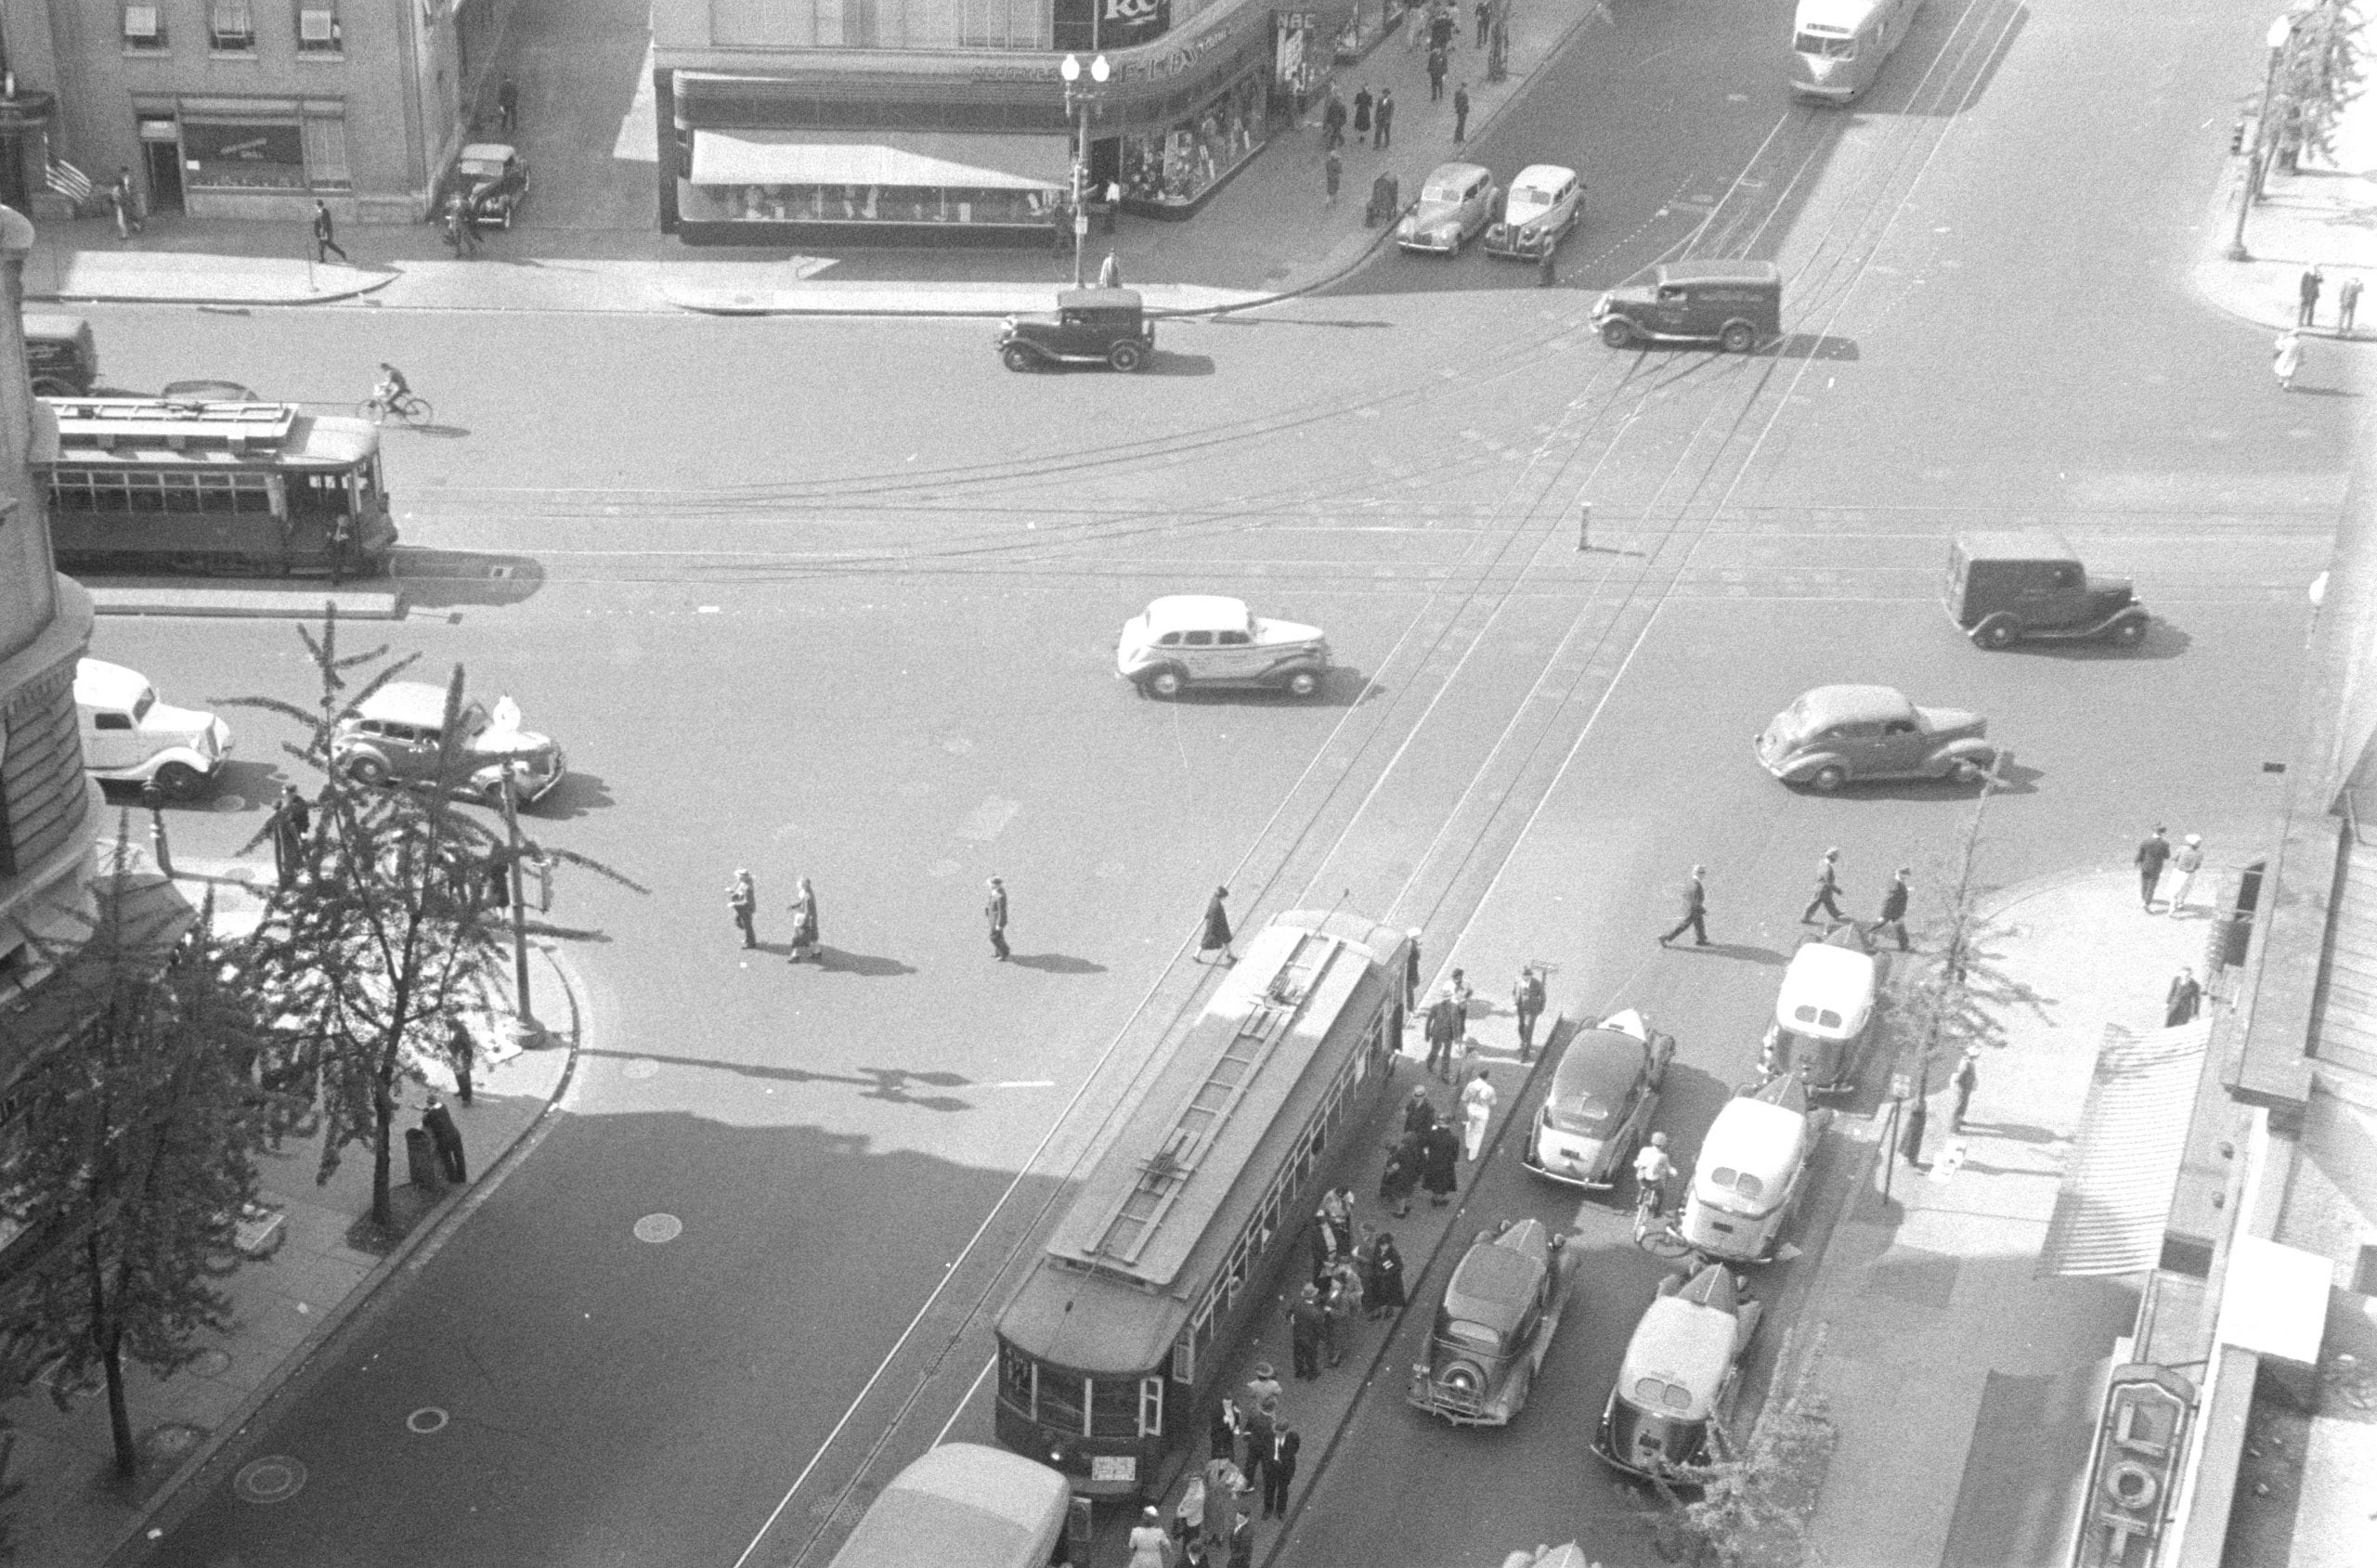 Detailed 1939 Photo of Intersection at 14th and New York